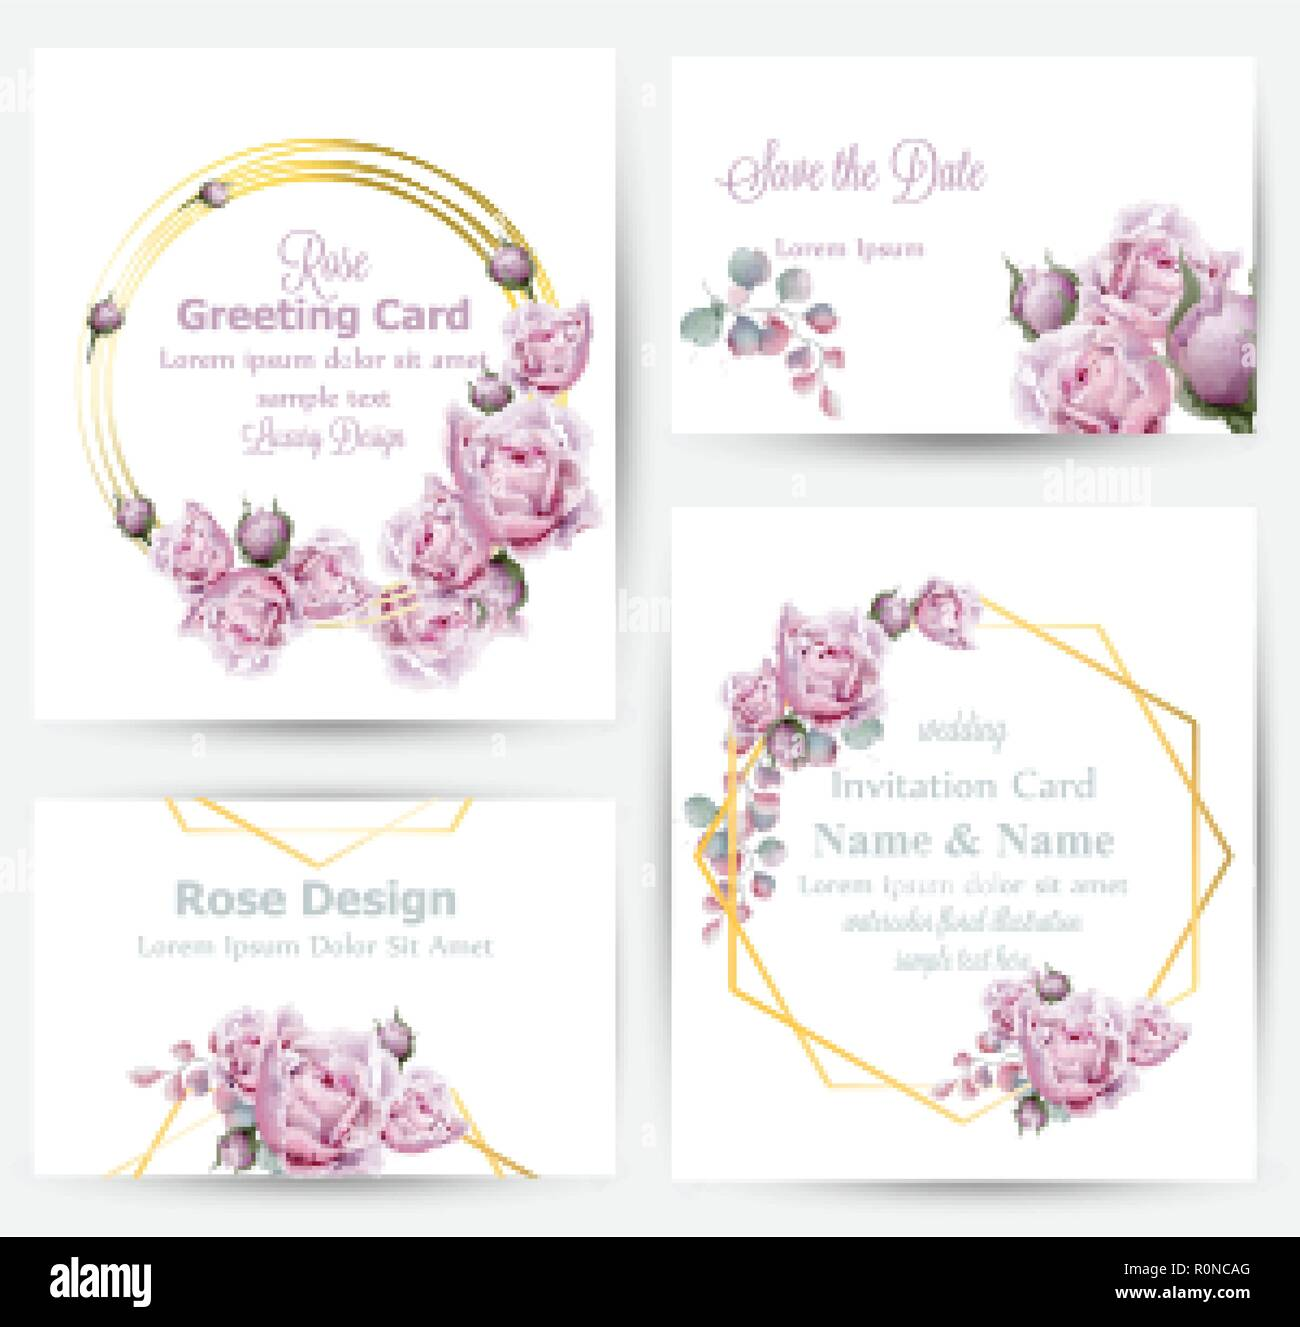 watercolor rose flowers cards set collection vector vintage greeting or buisiness card wedding invitation thank you note summer floral decor flow